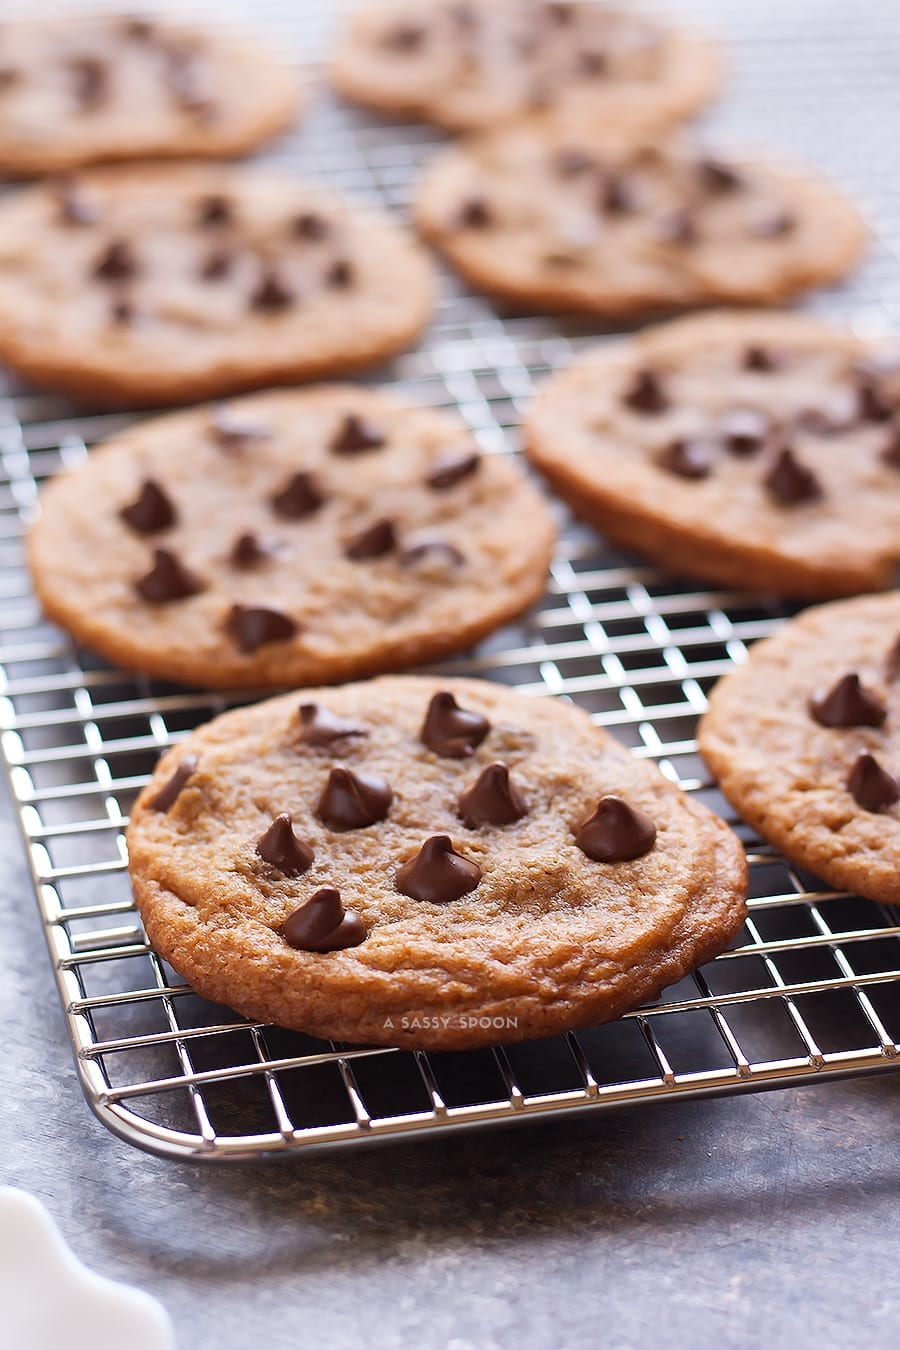 The Best Chewy, Rich, Soft Chocolate Chip Cookies